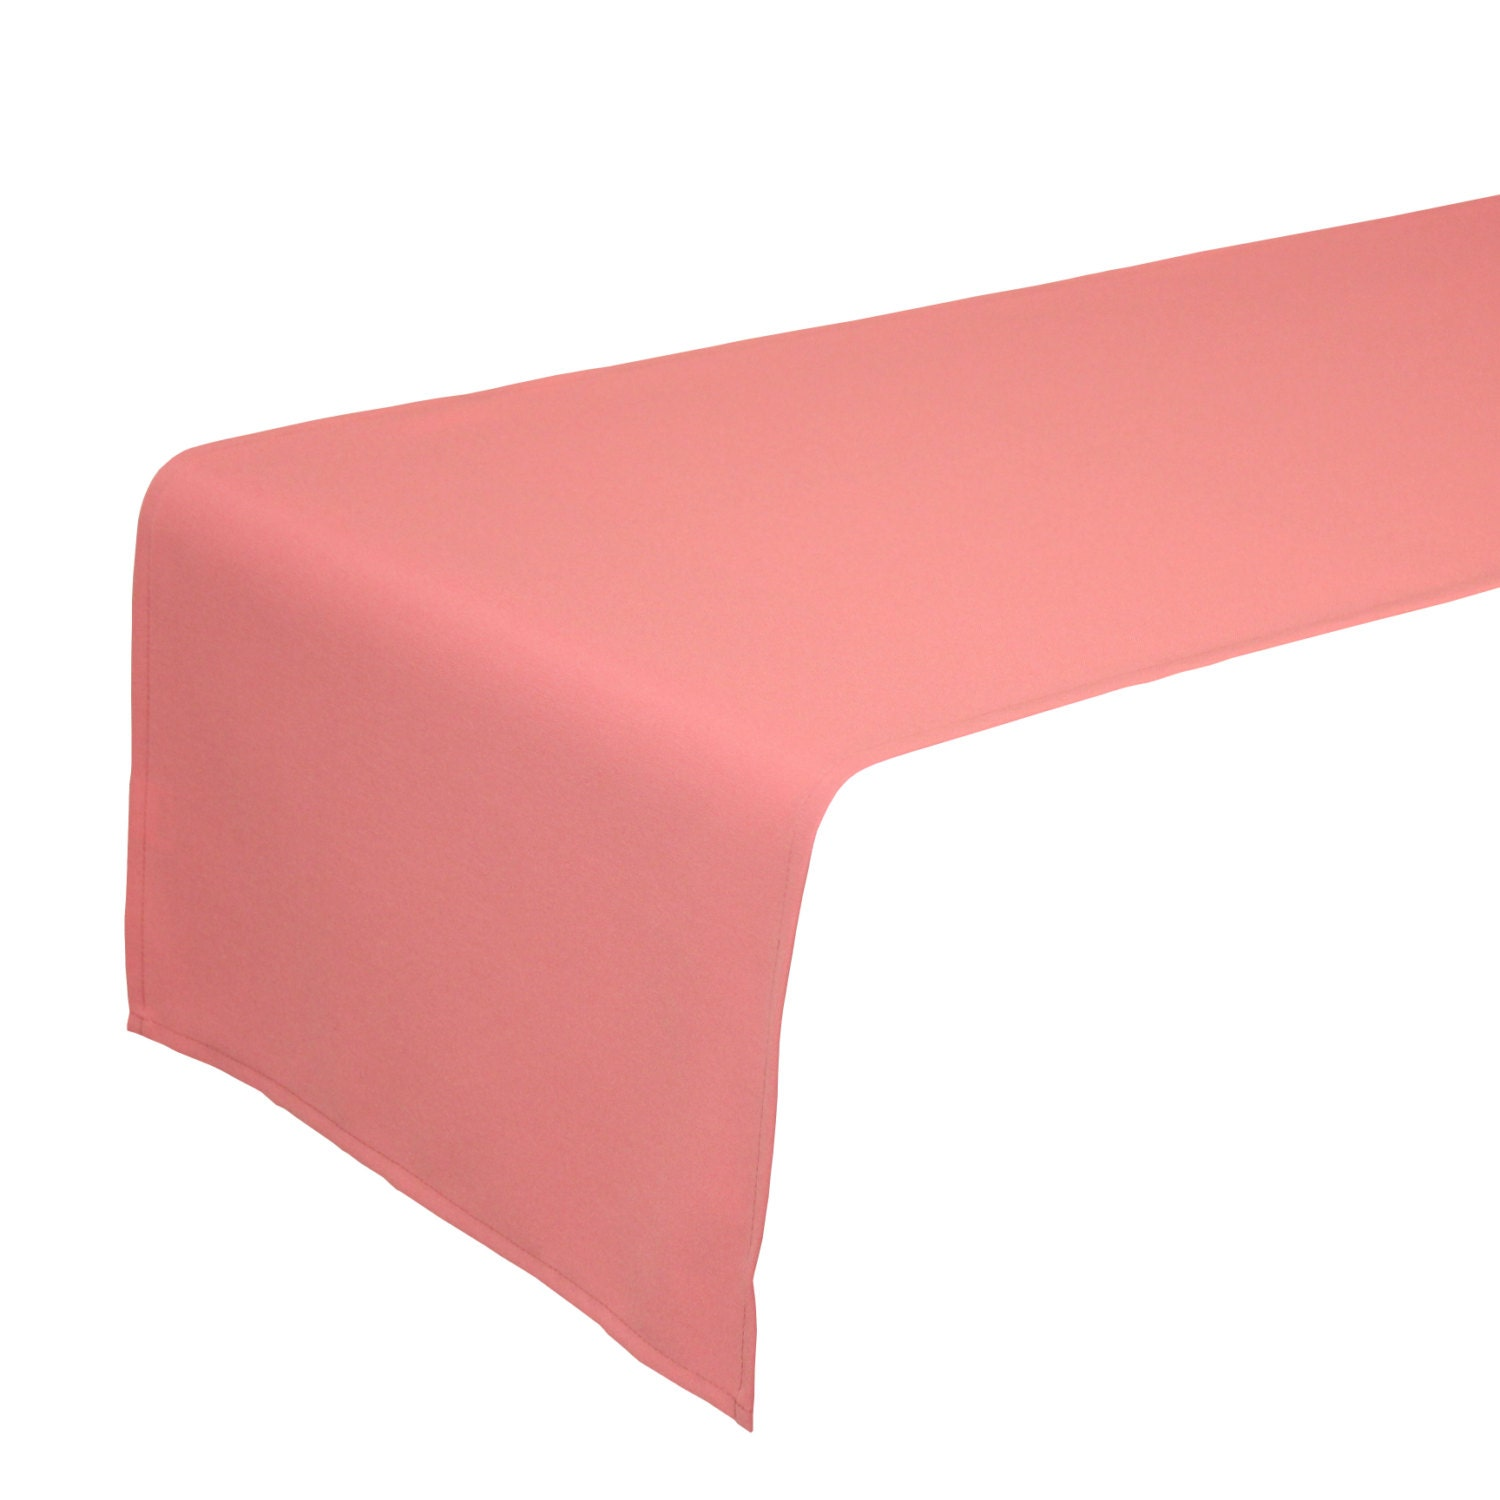 Coral table runner 14 x 108 inches perfect as salmon table for 108 table runner